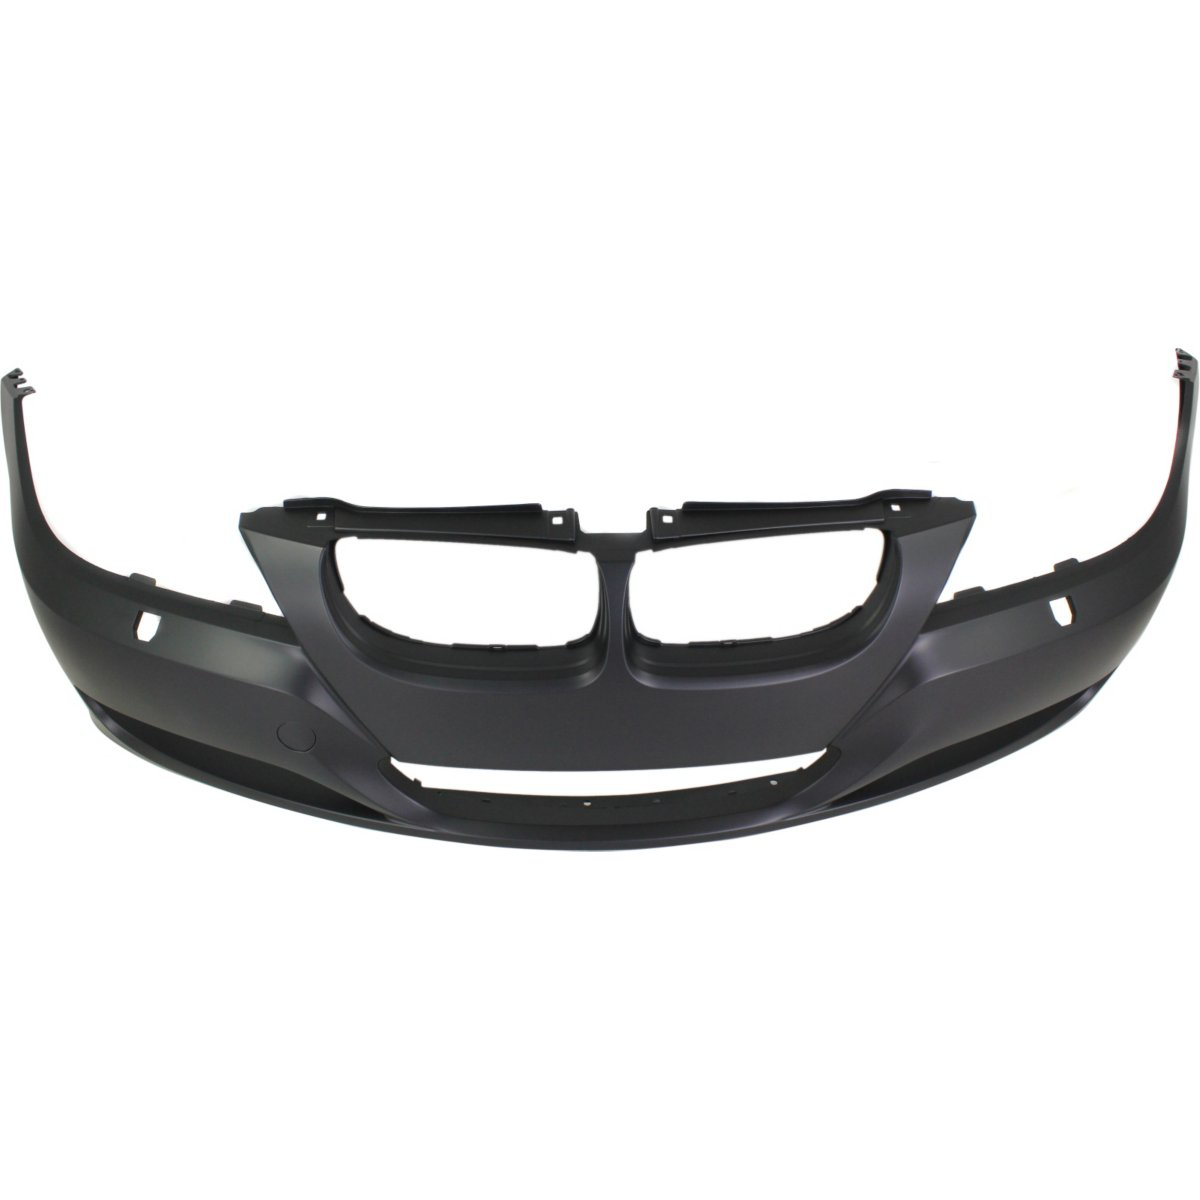 2009-2012 BMW 335i 328i Front Bumper Painted to Match